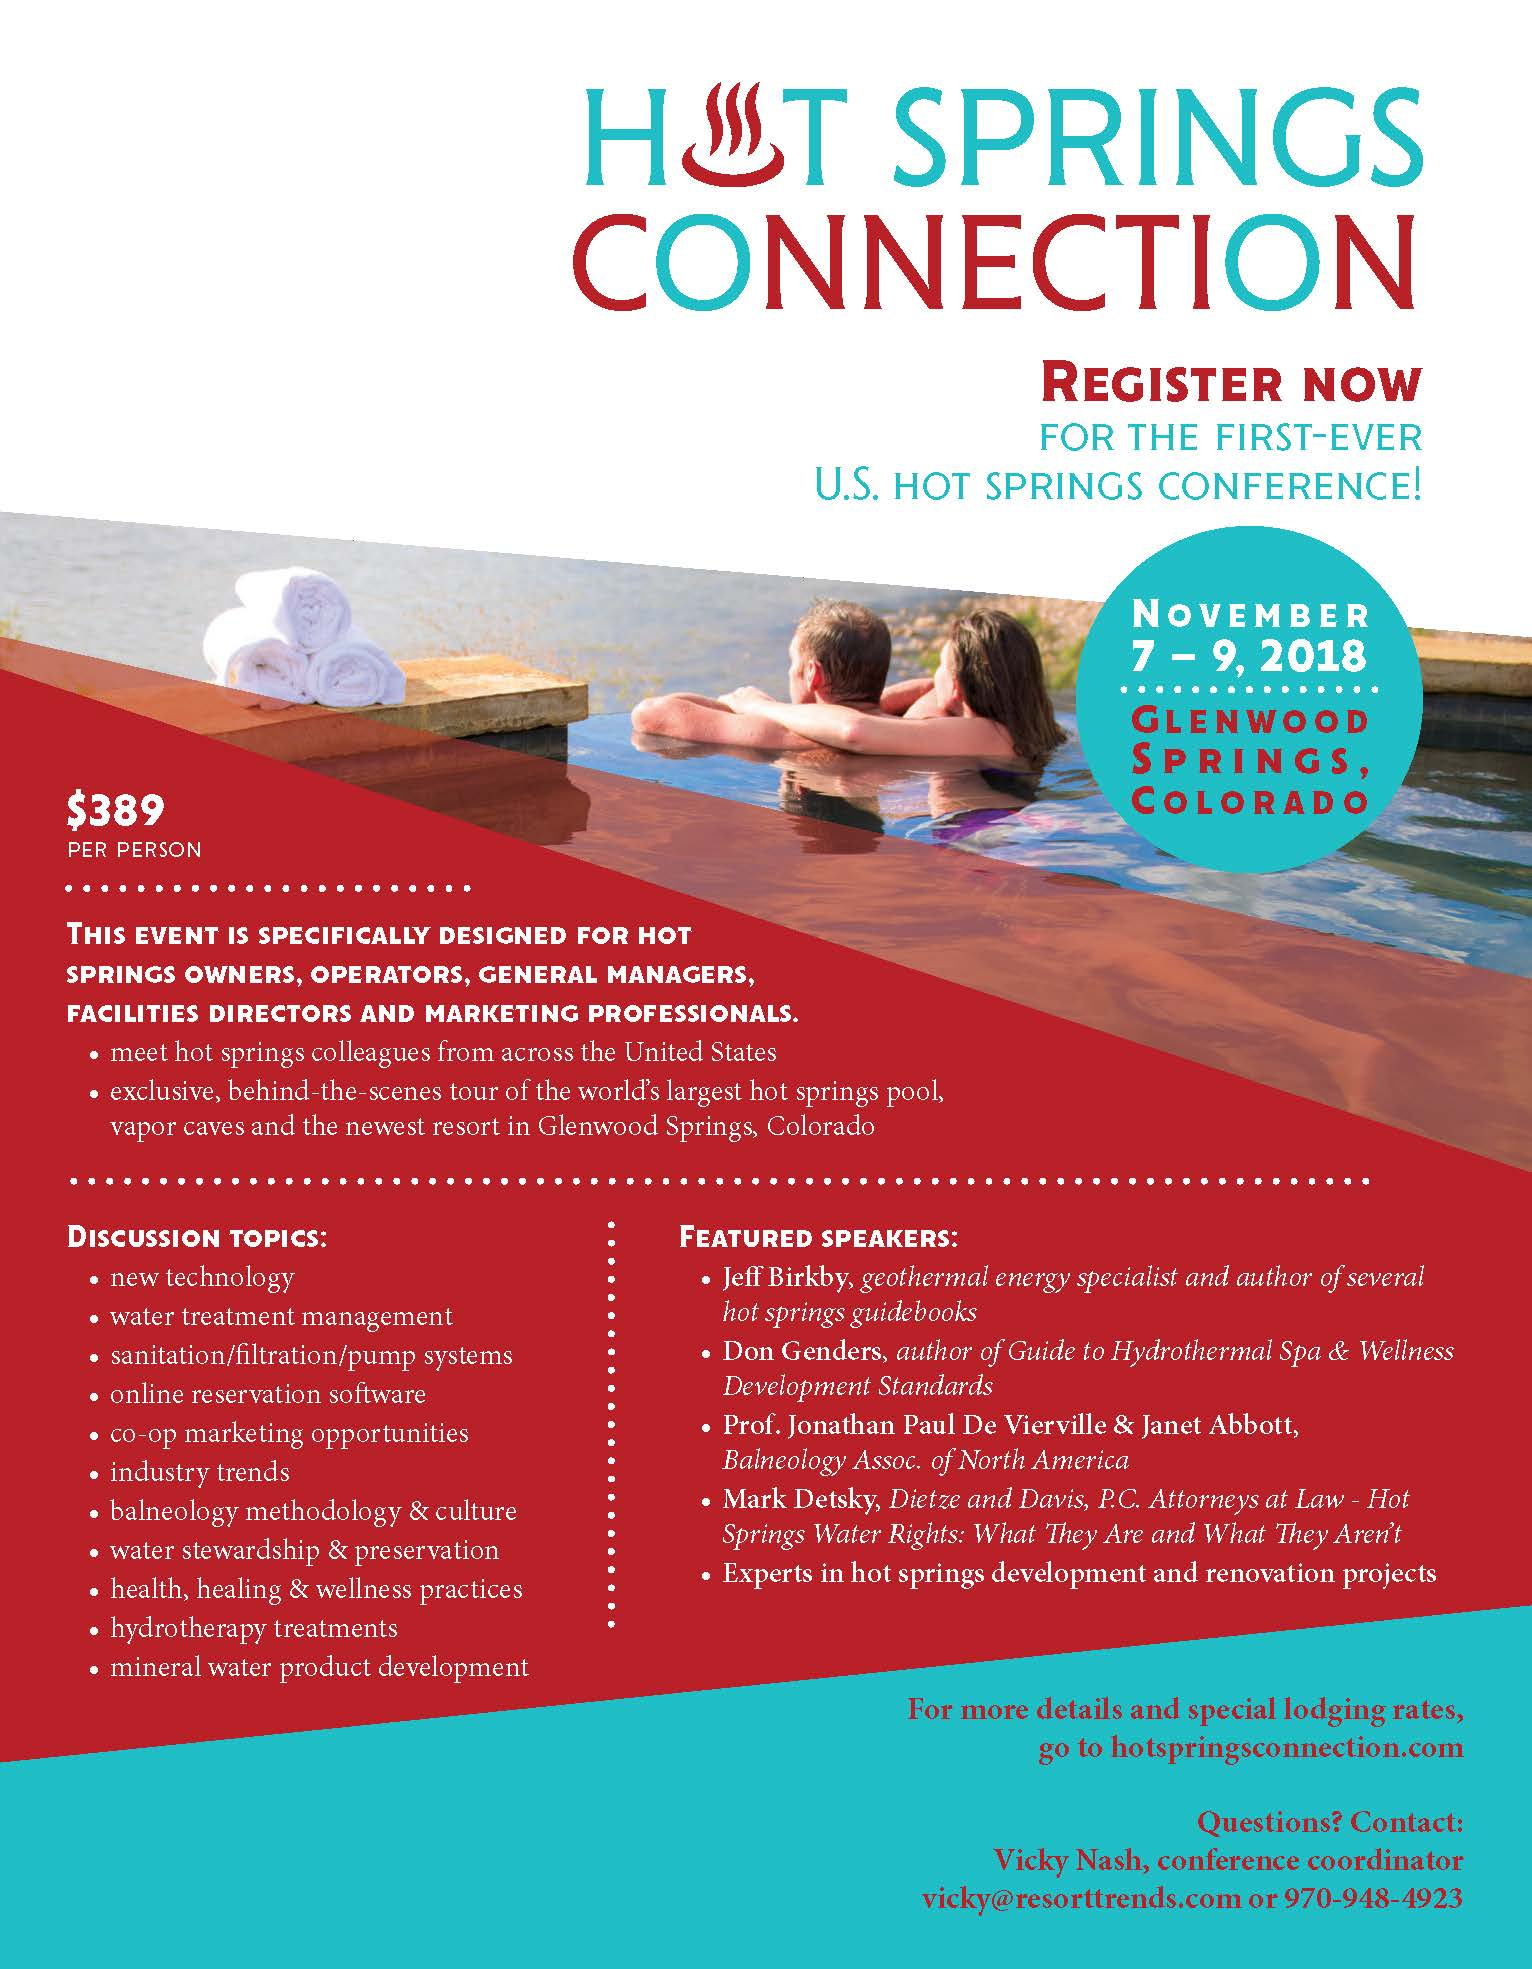 Hot Springs Connection flyer.jpg